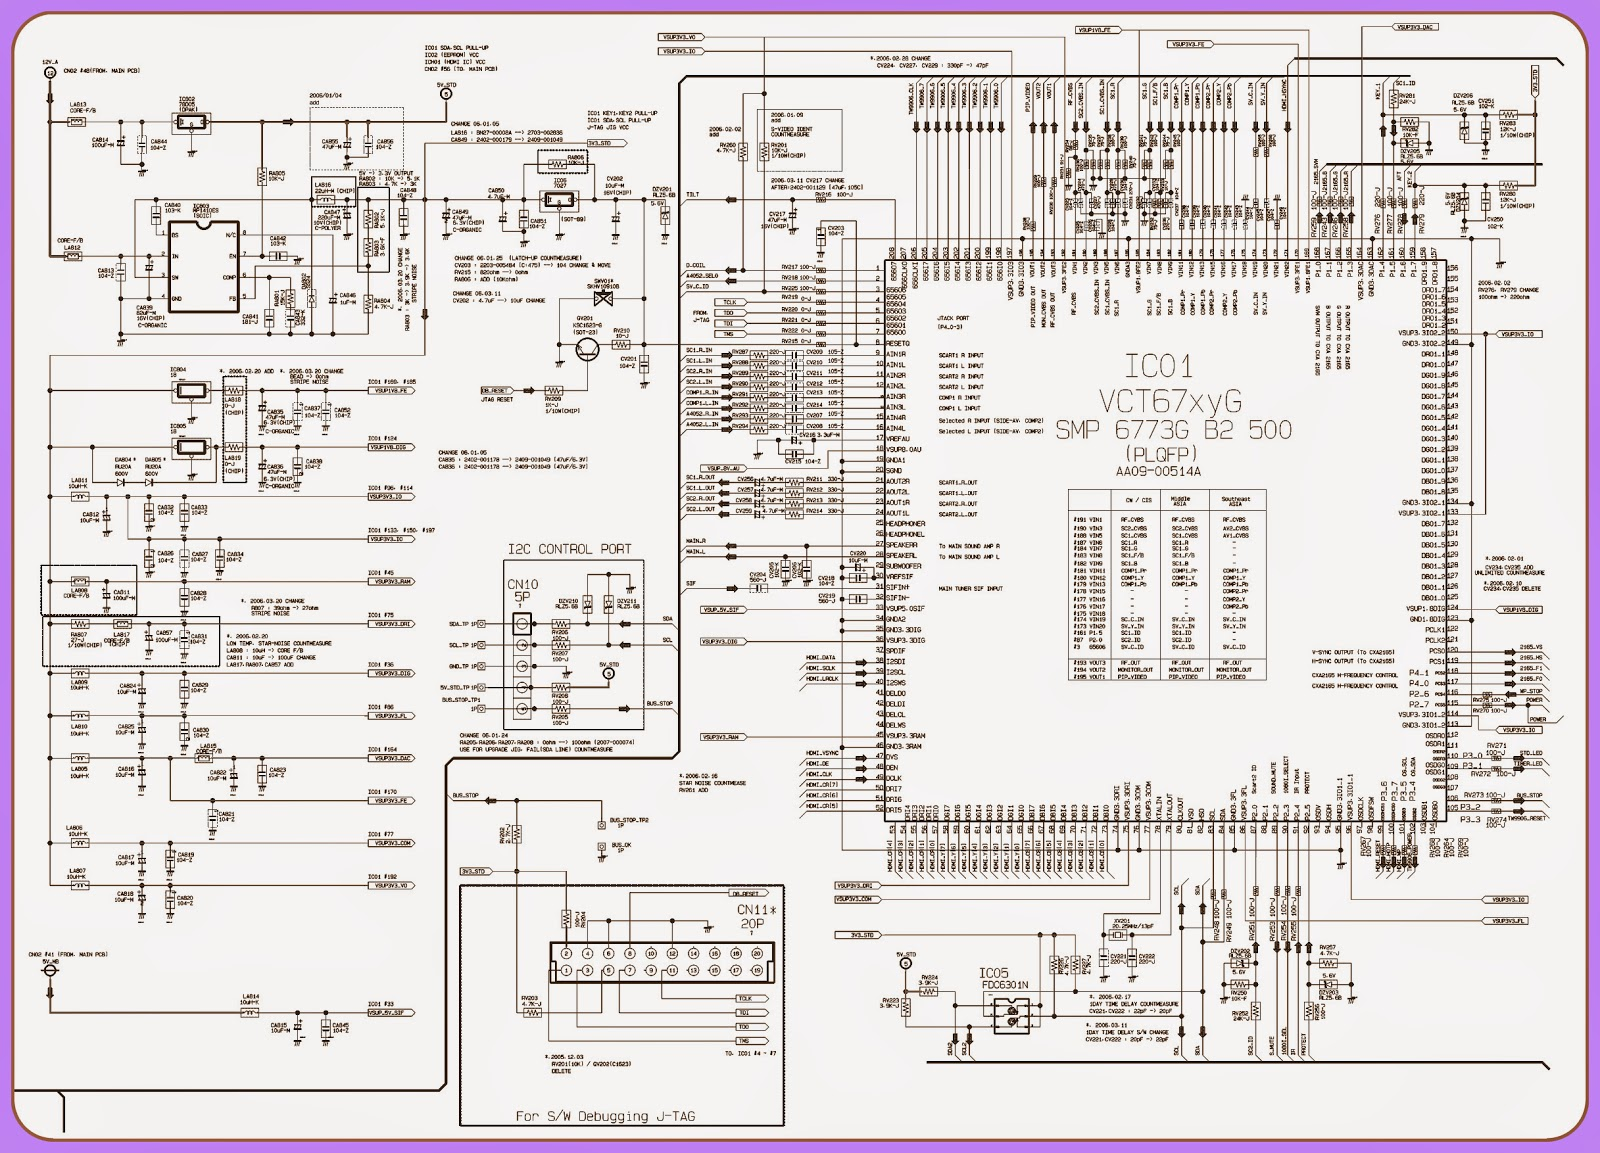 Samsung Tv Fan Diagram Wiring Will Be A Thing Daihatsu Terios Free Crt Ws 32z30hpq Smps Power And Deflection Led Schematic Repair Manual